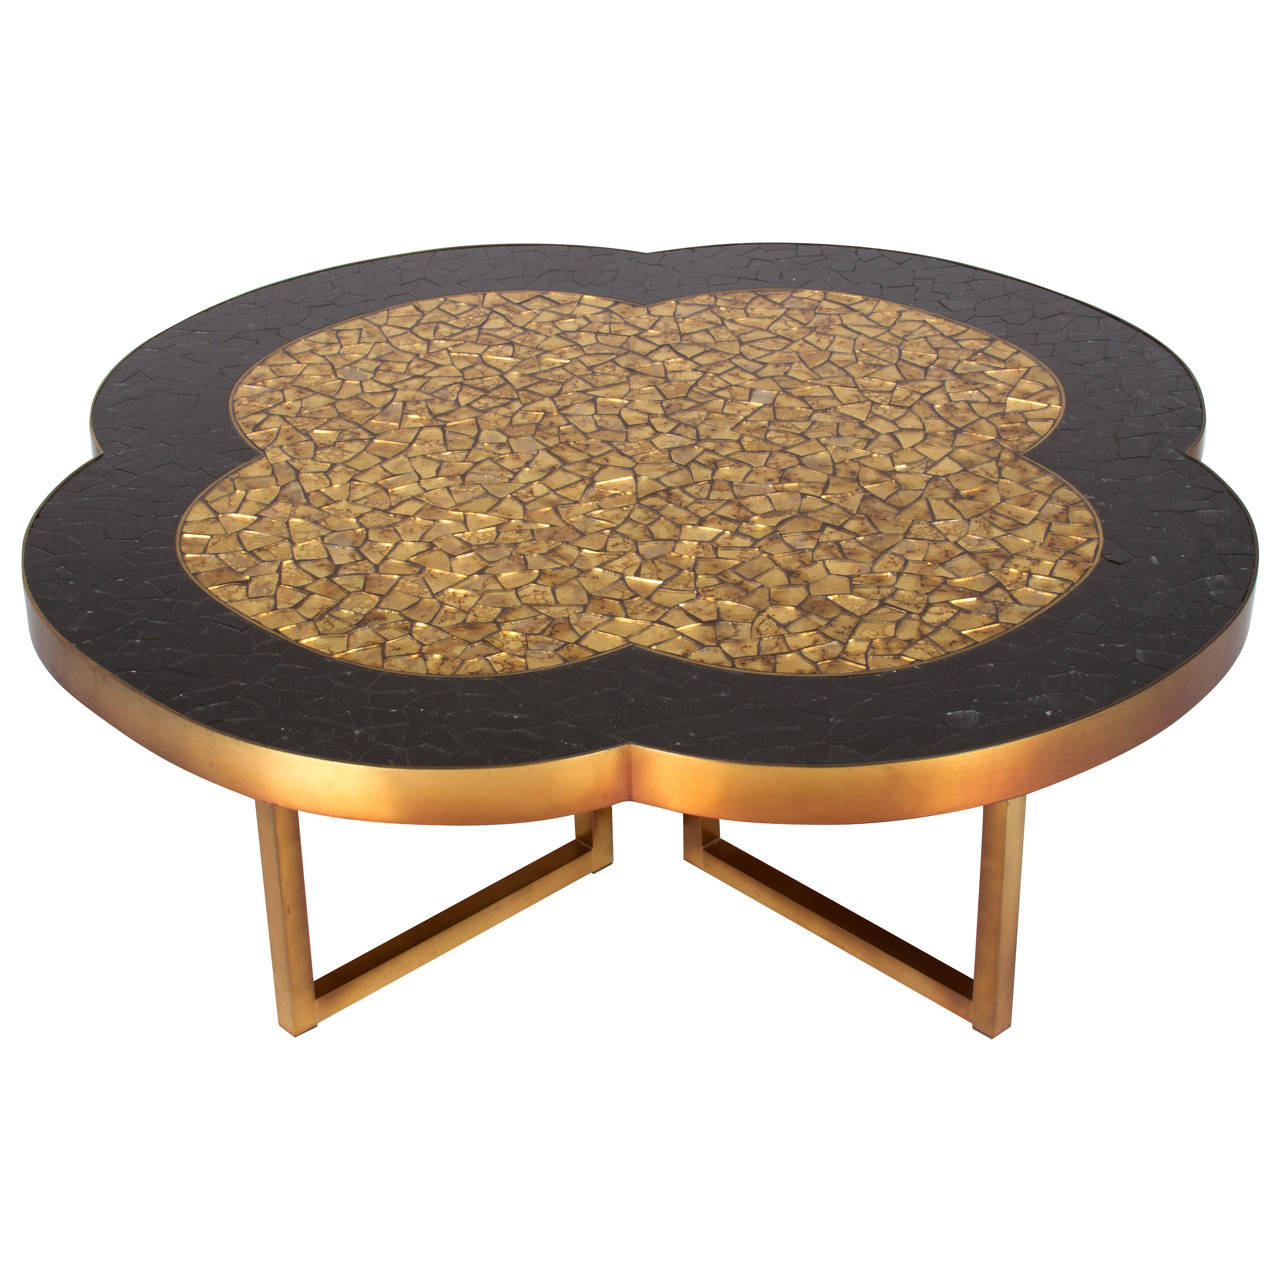 Fashionable Gold Leaf Collection Coffee Tables With Gold Leaf And Black Glass Mosaic Quatrefoil Coffee Table Black Ping (View 4 of 20)